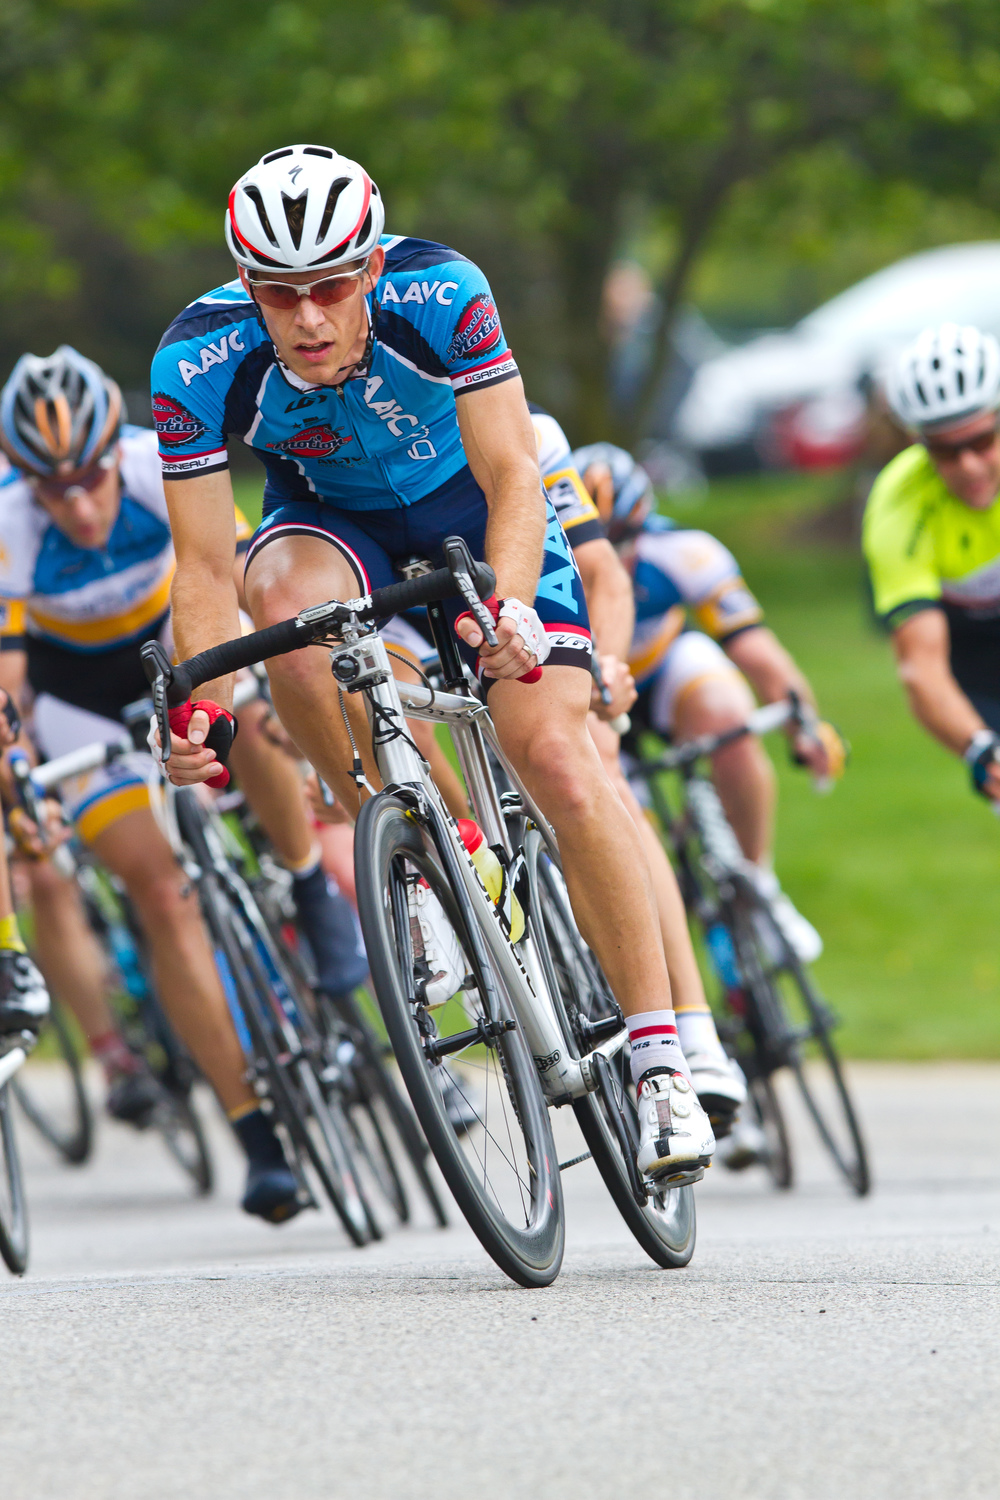 2014-09-01 12.04.57 Debaets-Devos Criterium (licensed from Bob Bruce).jpg